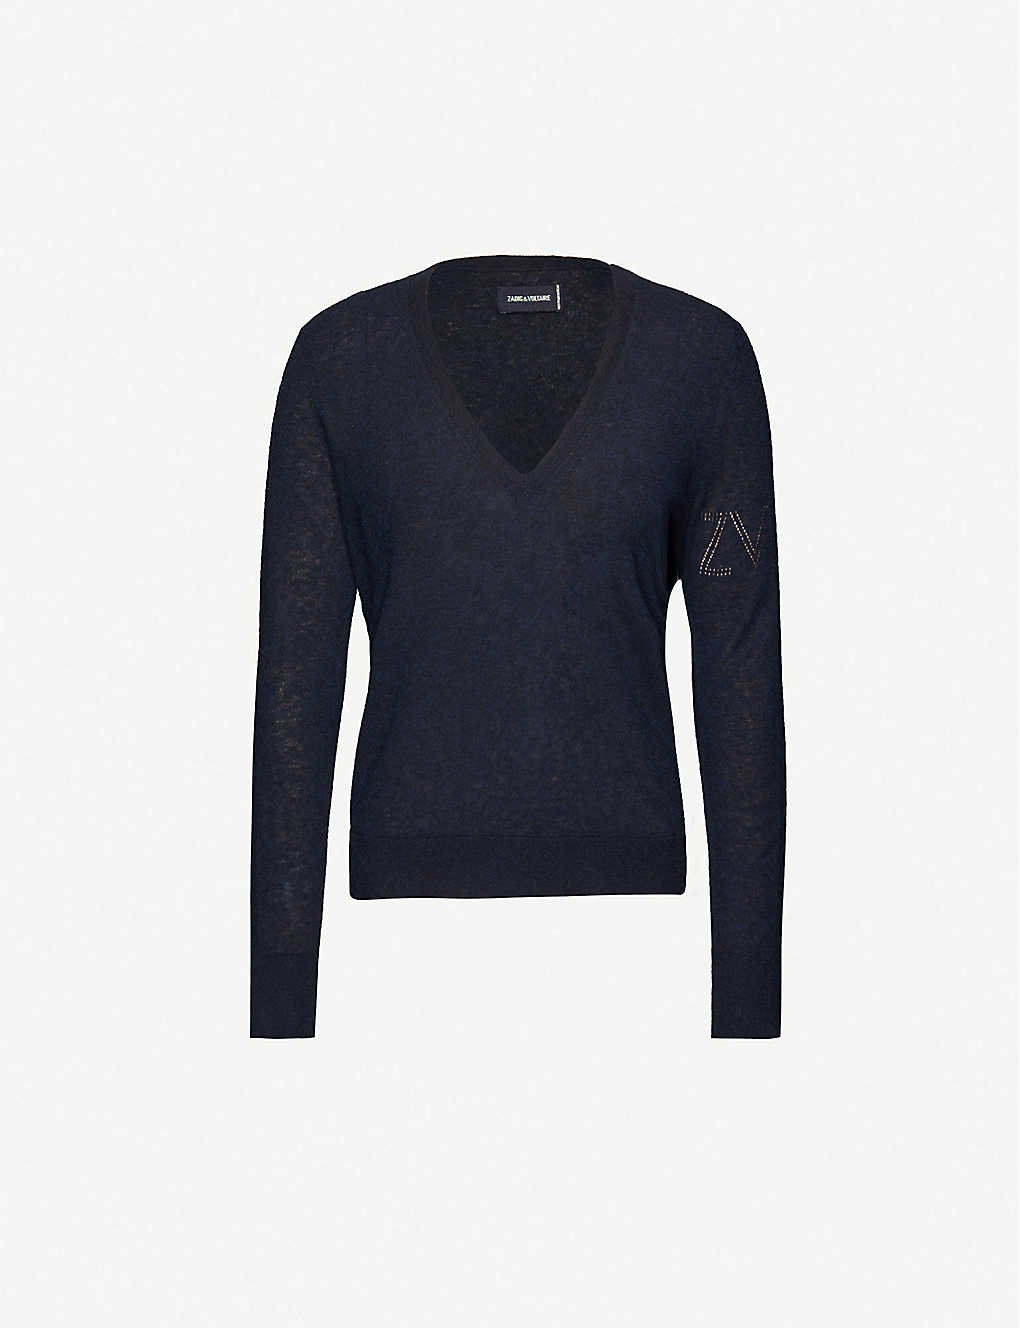 ZADIG&VOLTAIRE: Friday cashmere knitted jumper